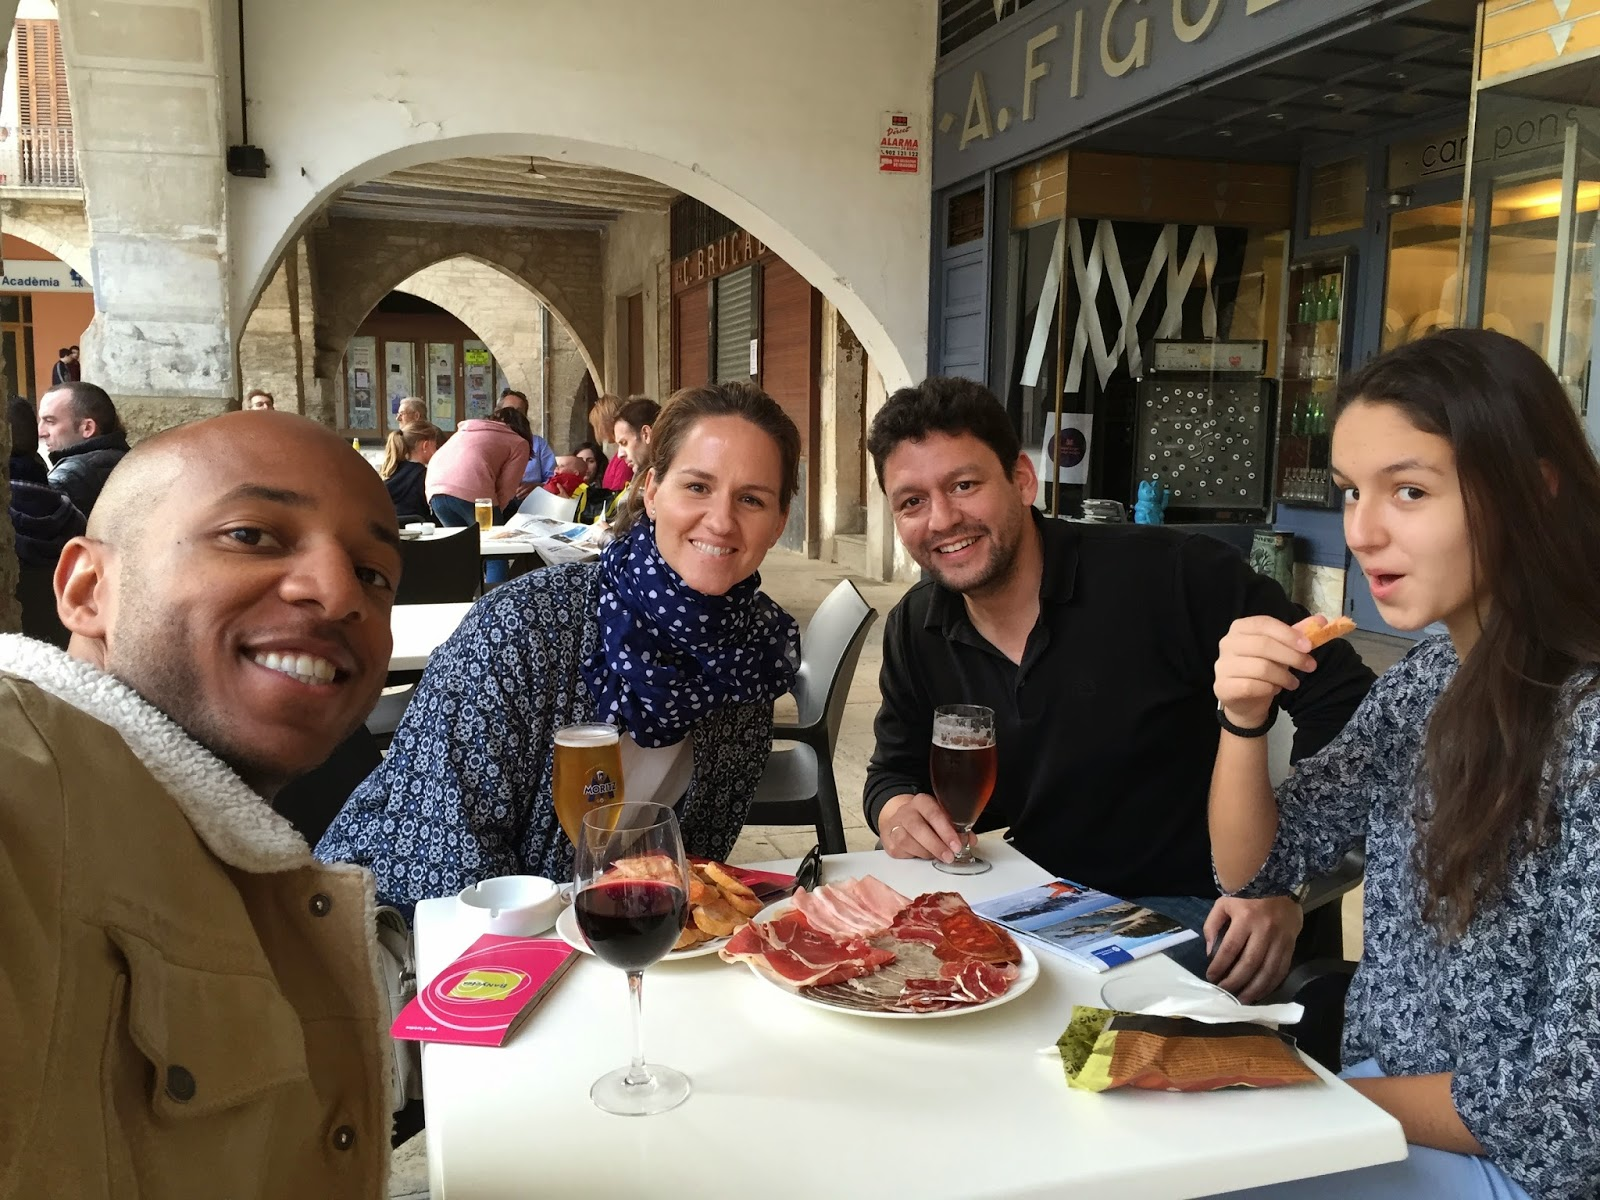 Enjoying a snack in the historic center of Banyoles